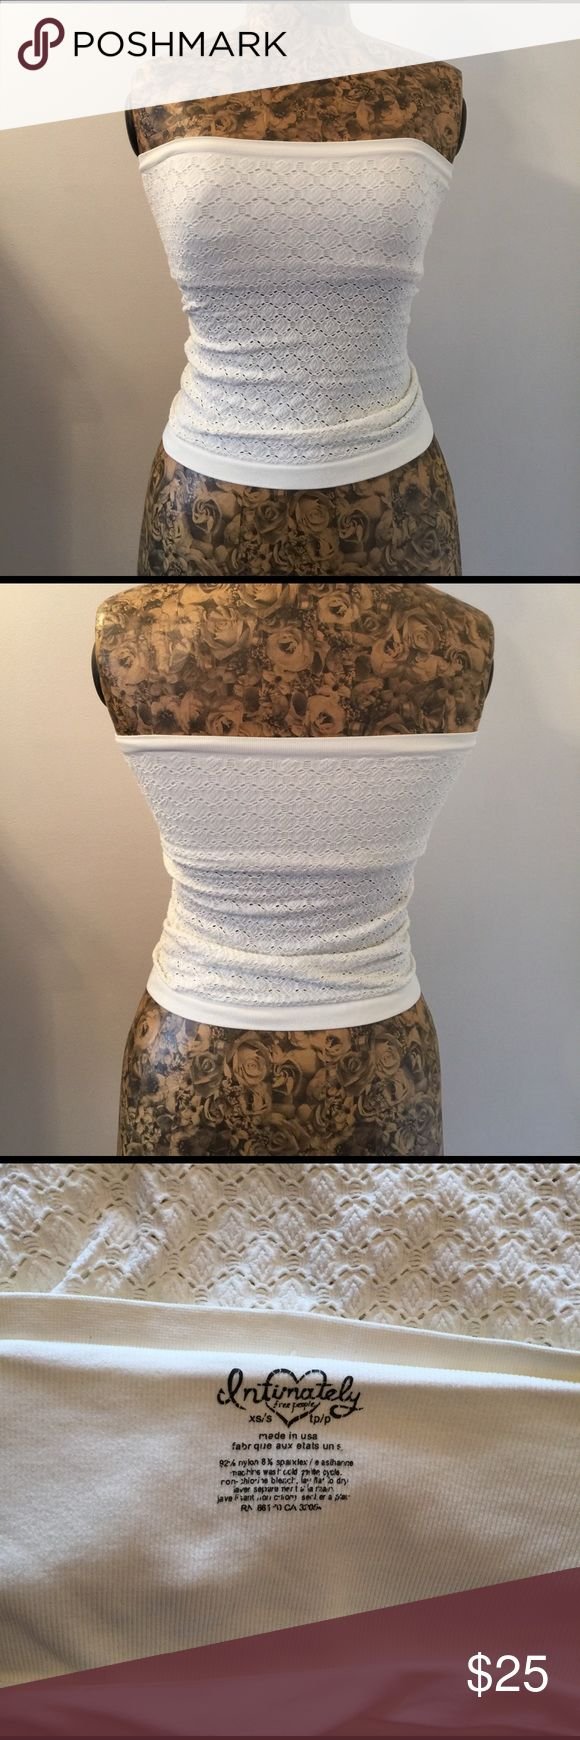 Free People tube top Cream colored, worn twice (like new condition). Built-in spandex bandeau style bra :-) Free People Tops